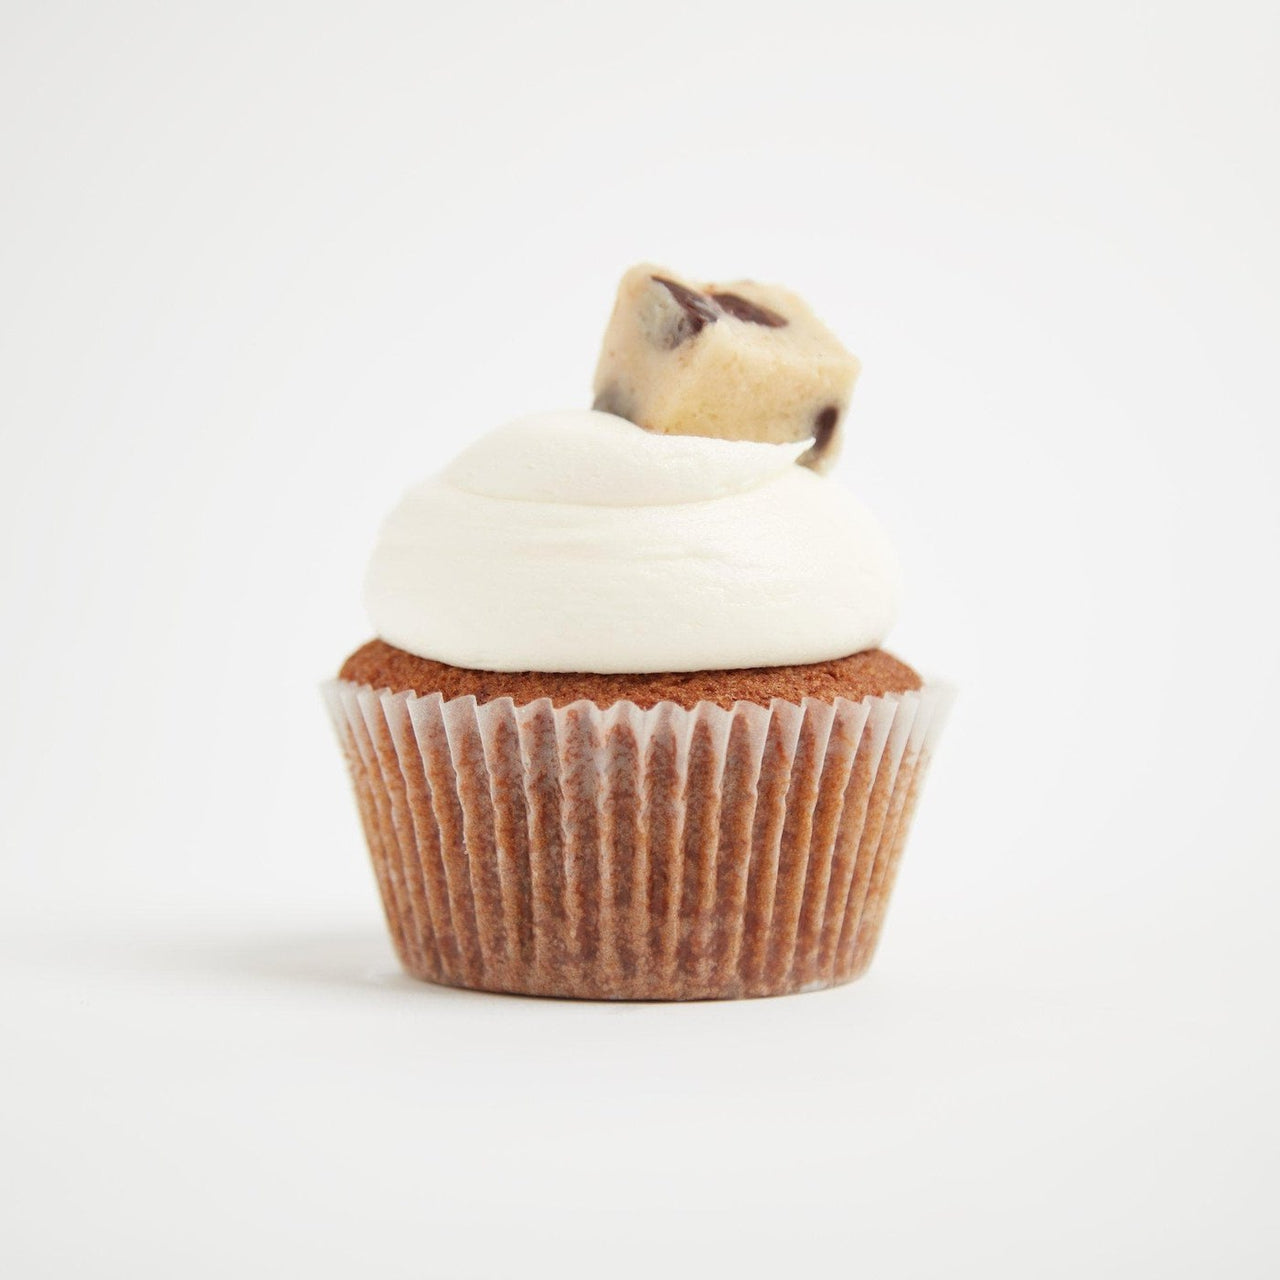 Cookie Dough Cupcakes by Crumbs & Doilies